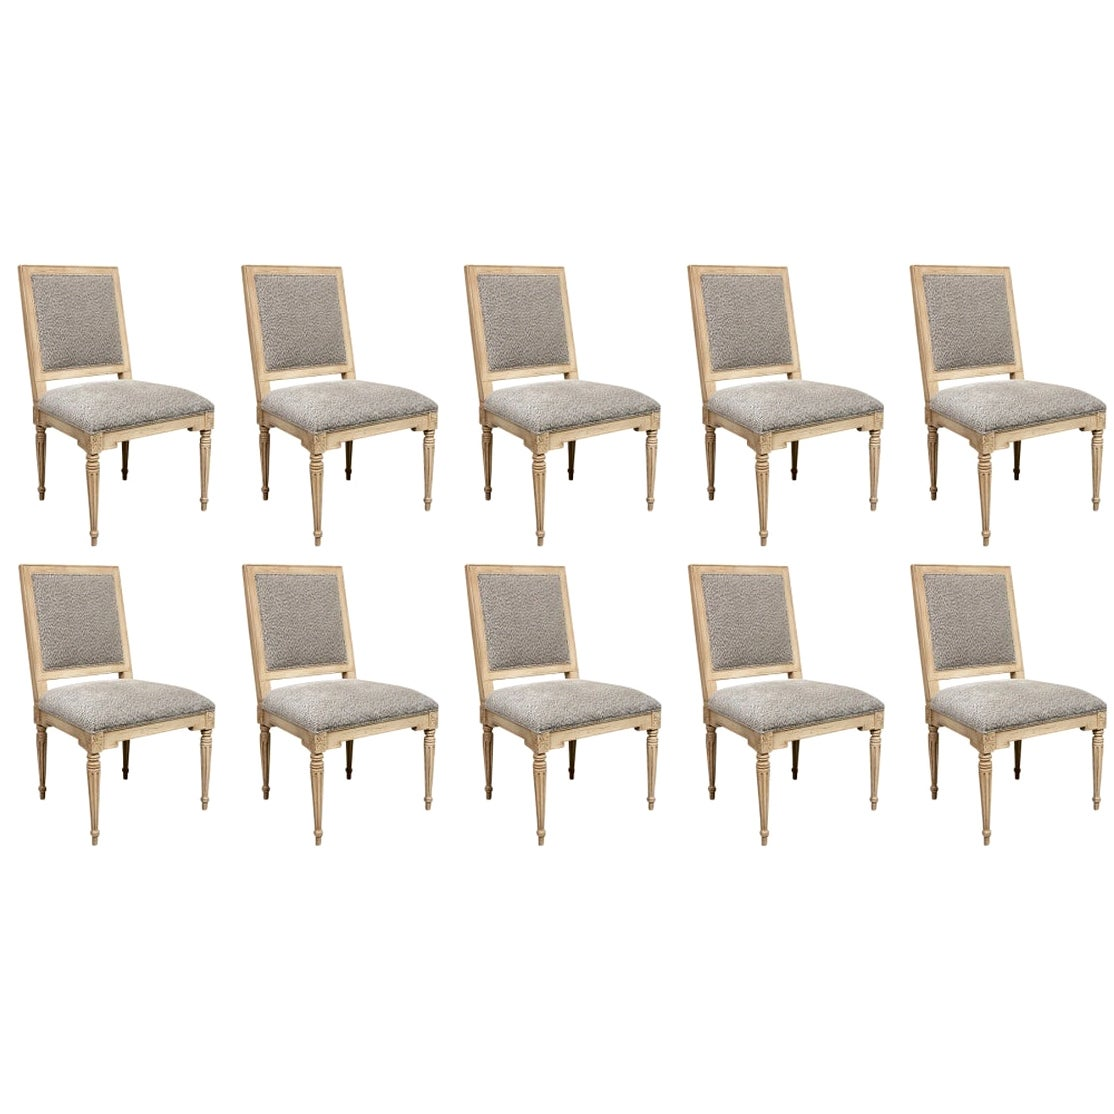 Set of Ten Gustavian Style Dining Chairs by Hickory Chair